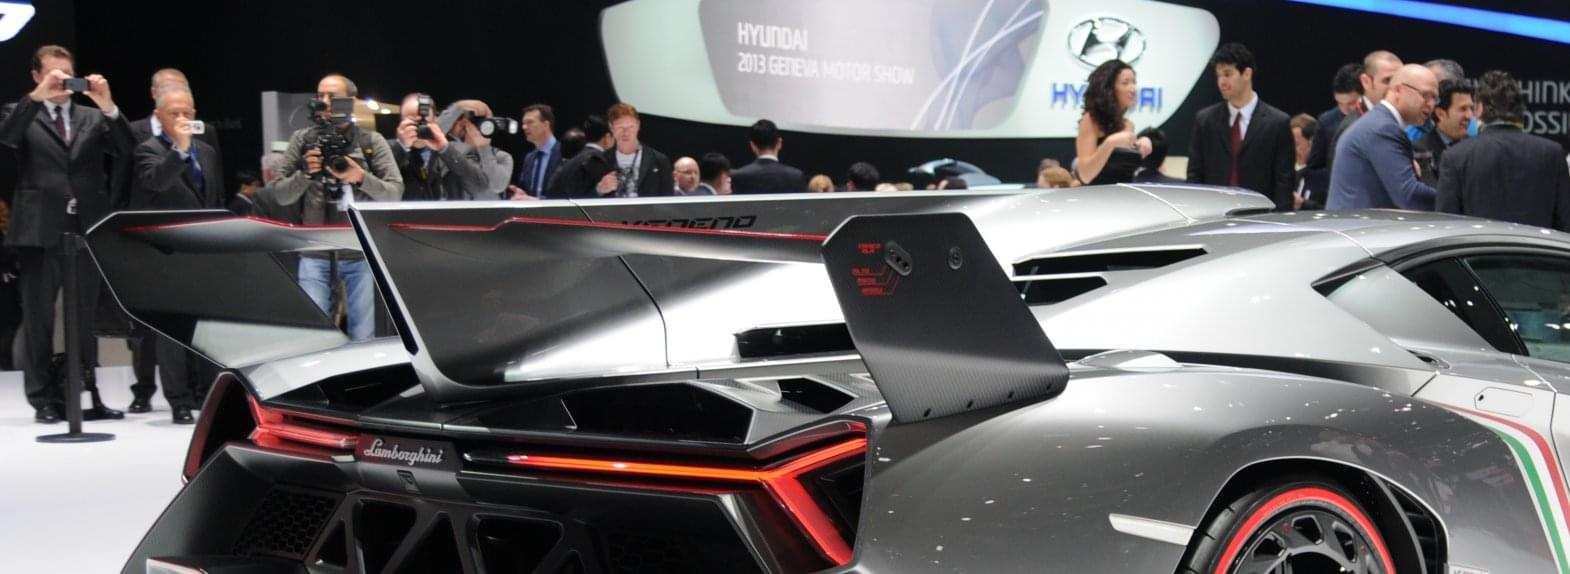 Rear view of a grey Lamborghini Veneno at the Geneva Motor Show